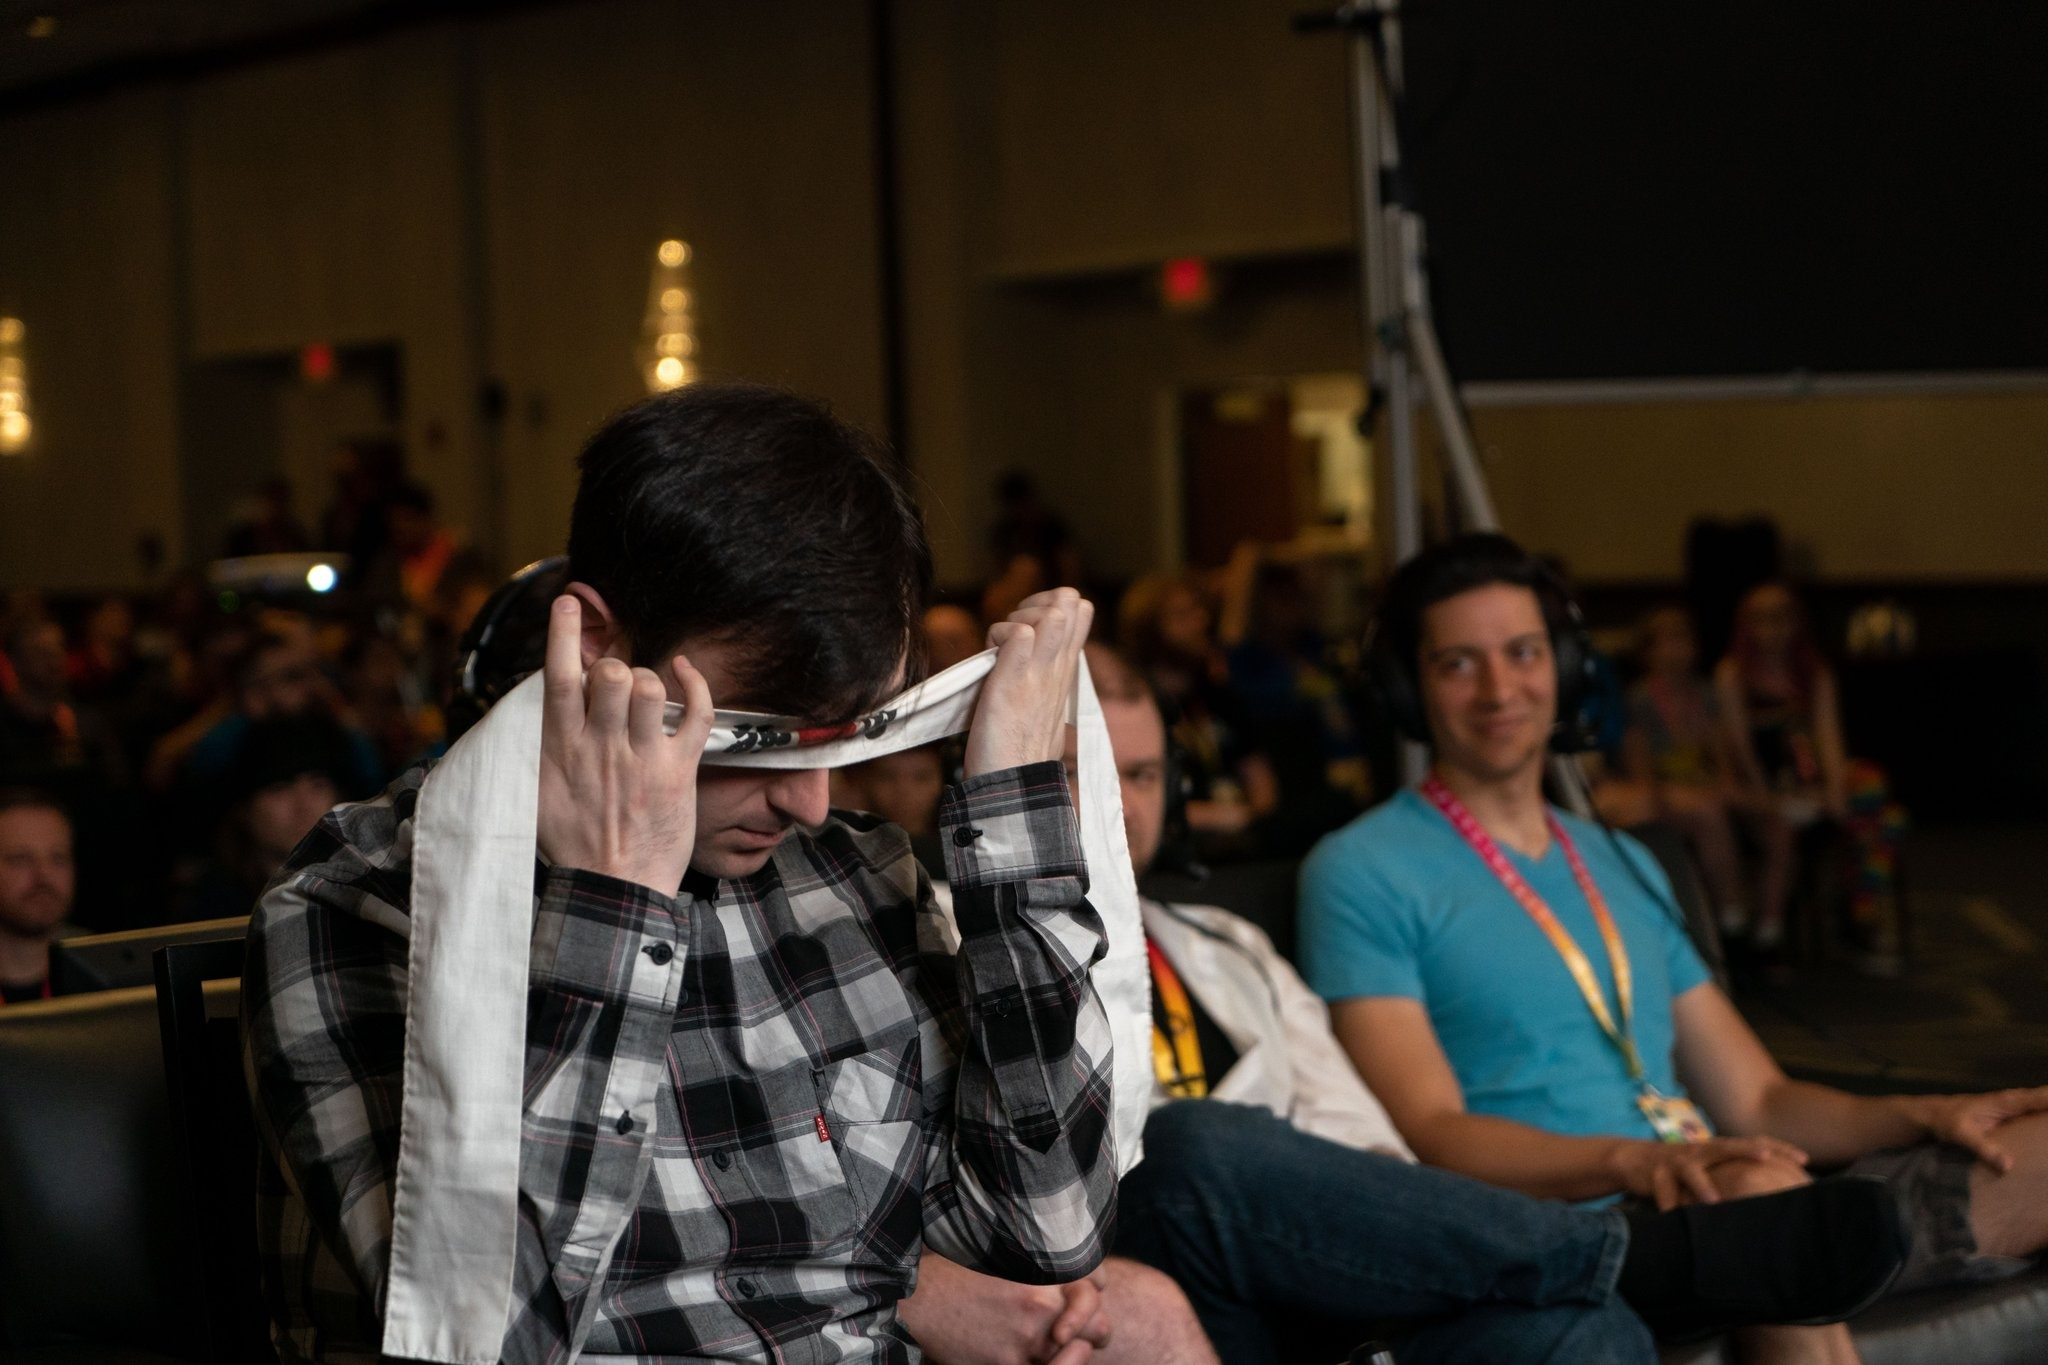 SGDQ 2019's Blindfolded Punch-Out Wii Run Is One For The Ages